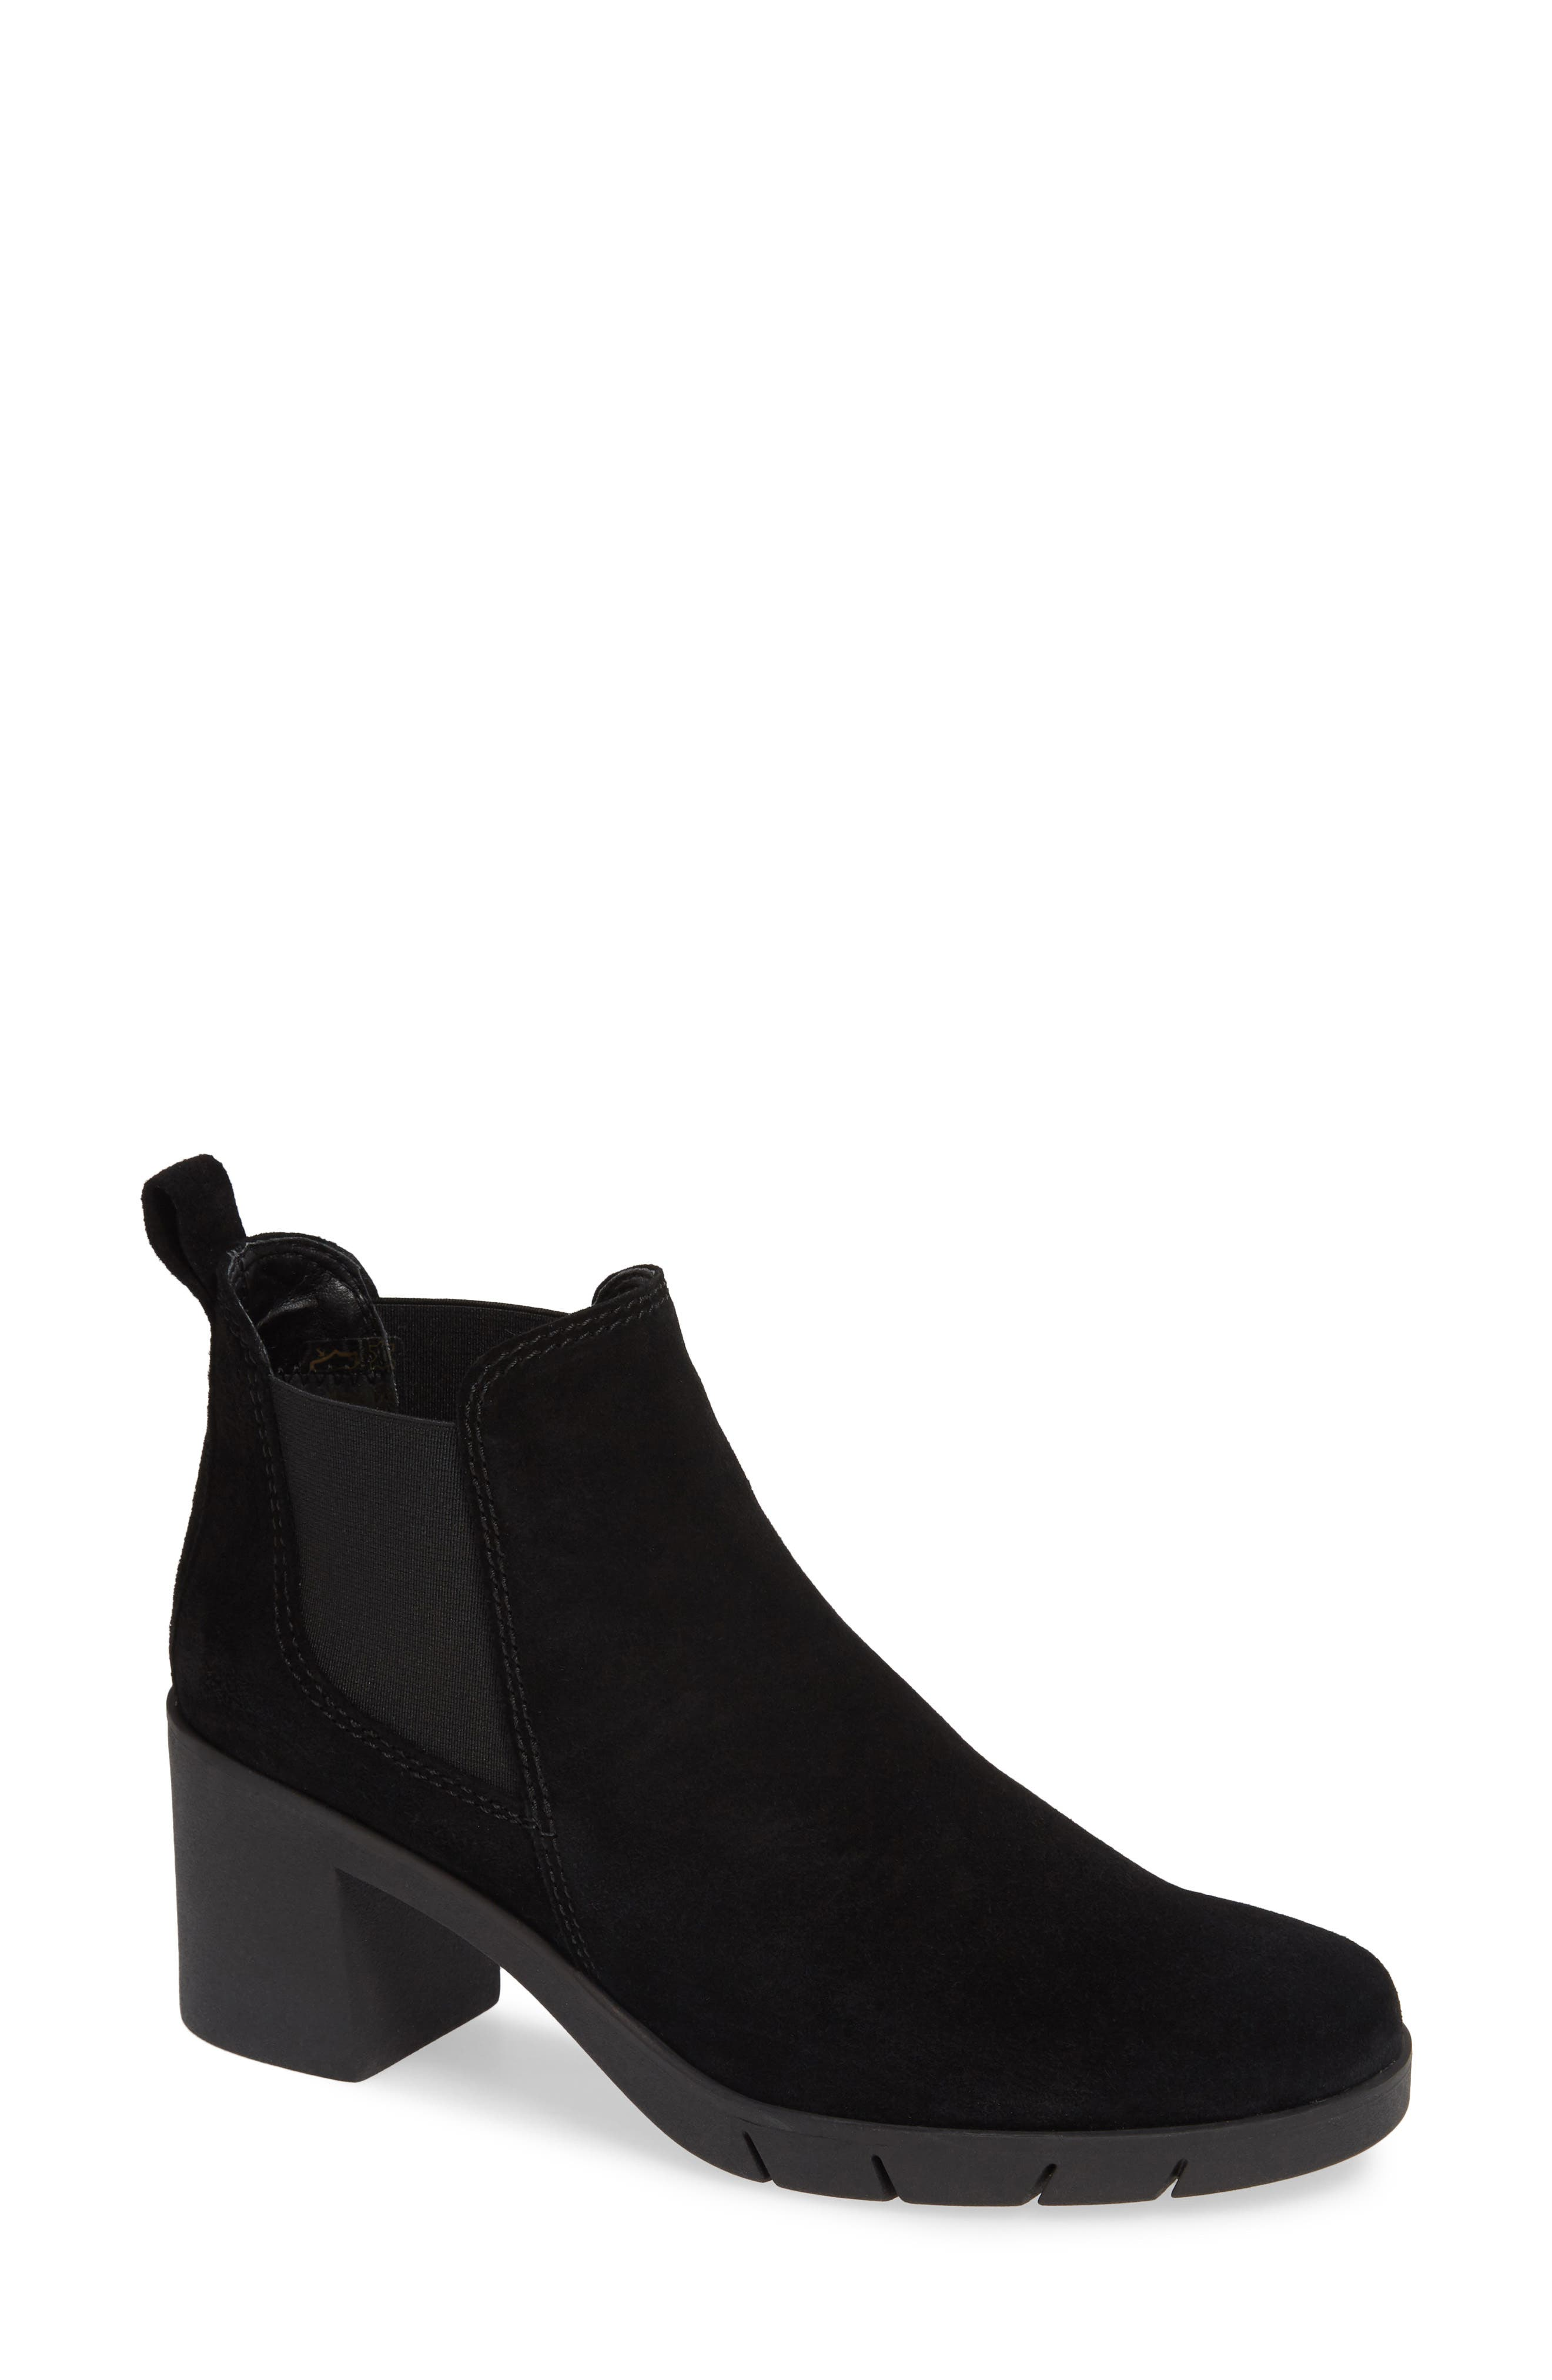 The Flexx Speak Out Chelsea Bootie- Black